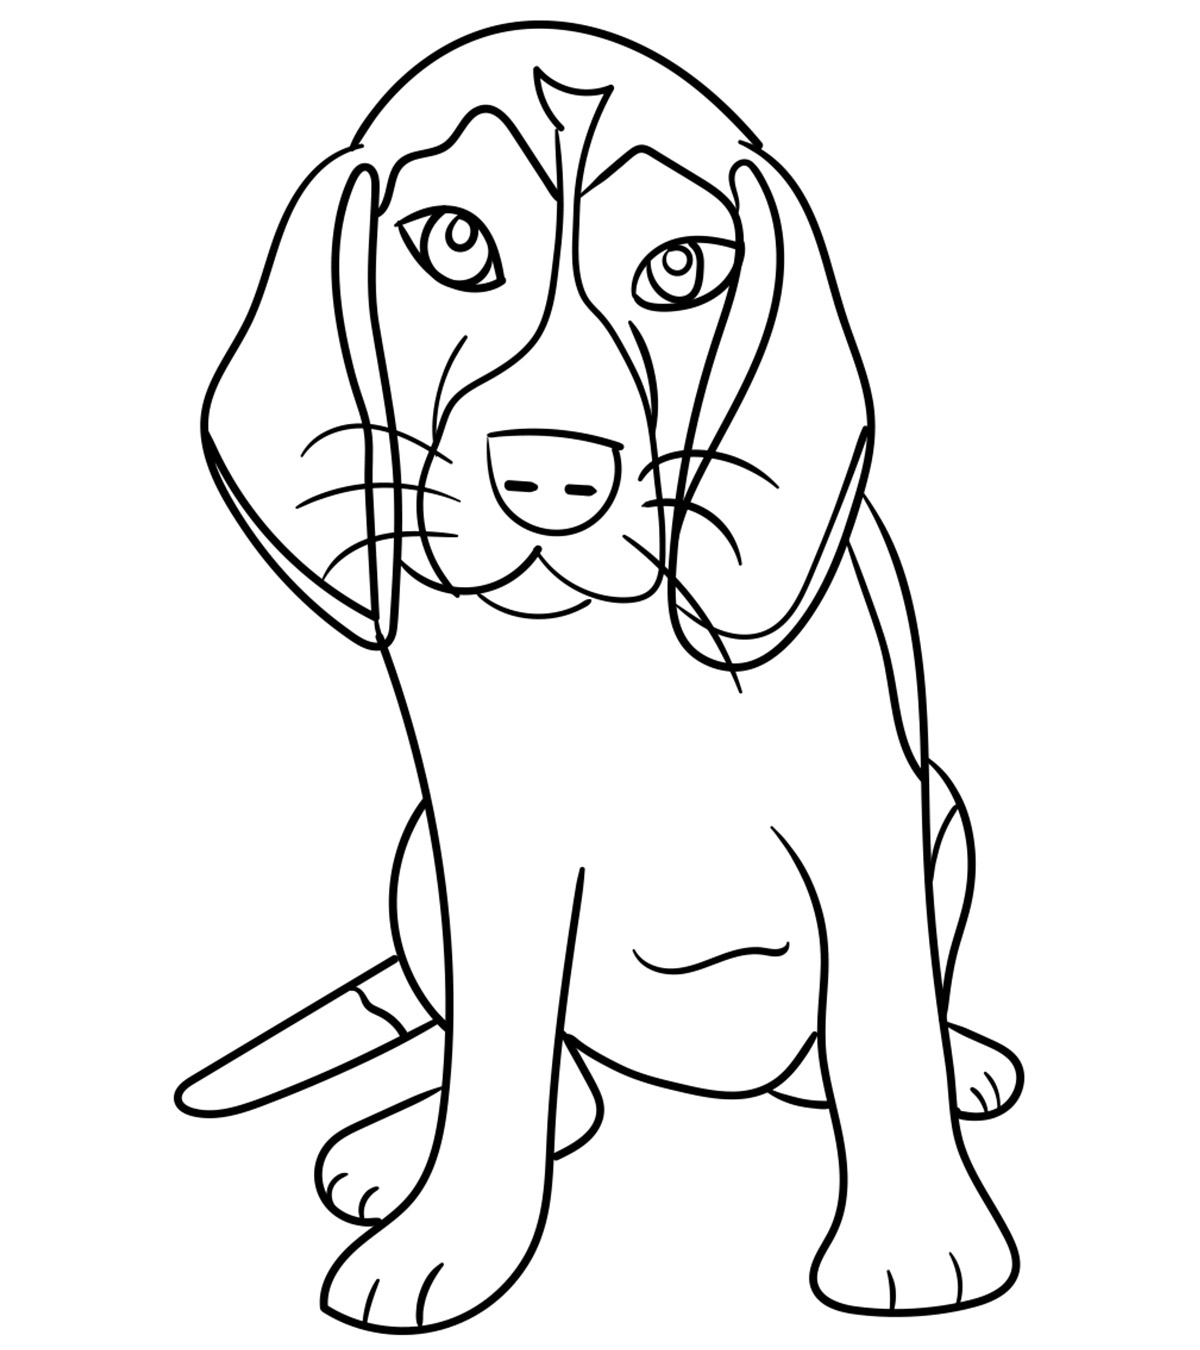 12 Pics Of Siberian Husky Dog Coloring Pages - Husky Coloring ... | 1350x1200